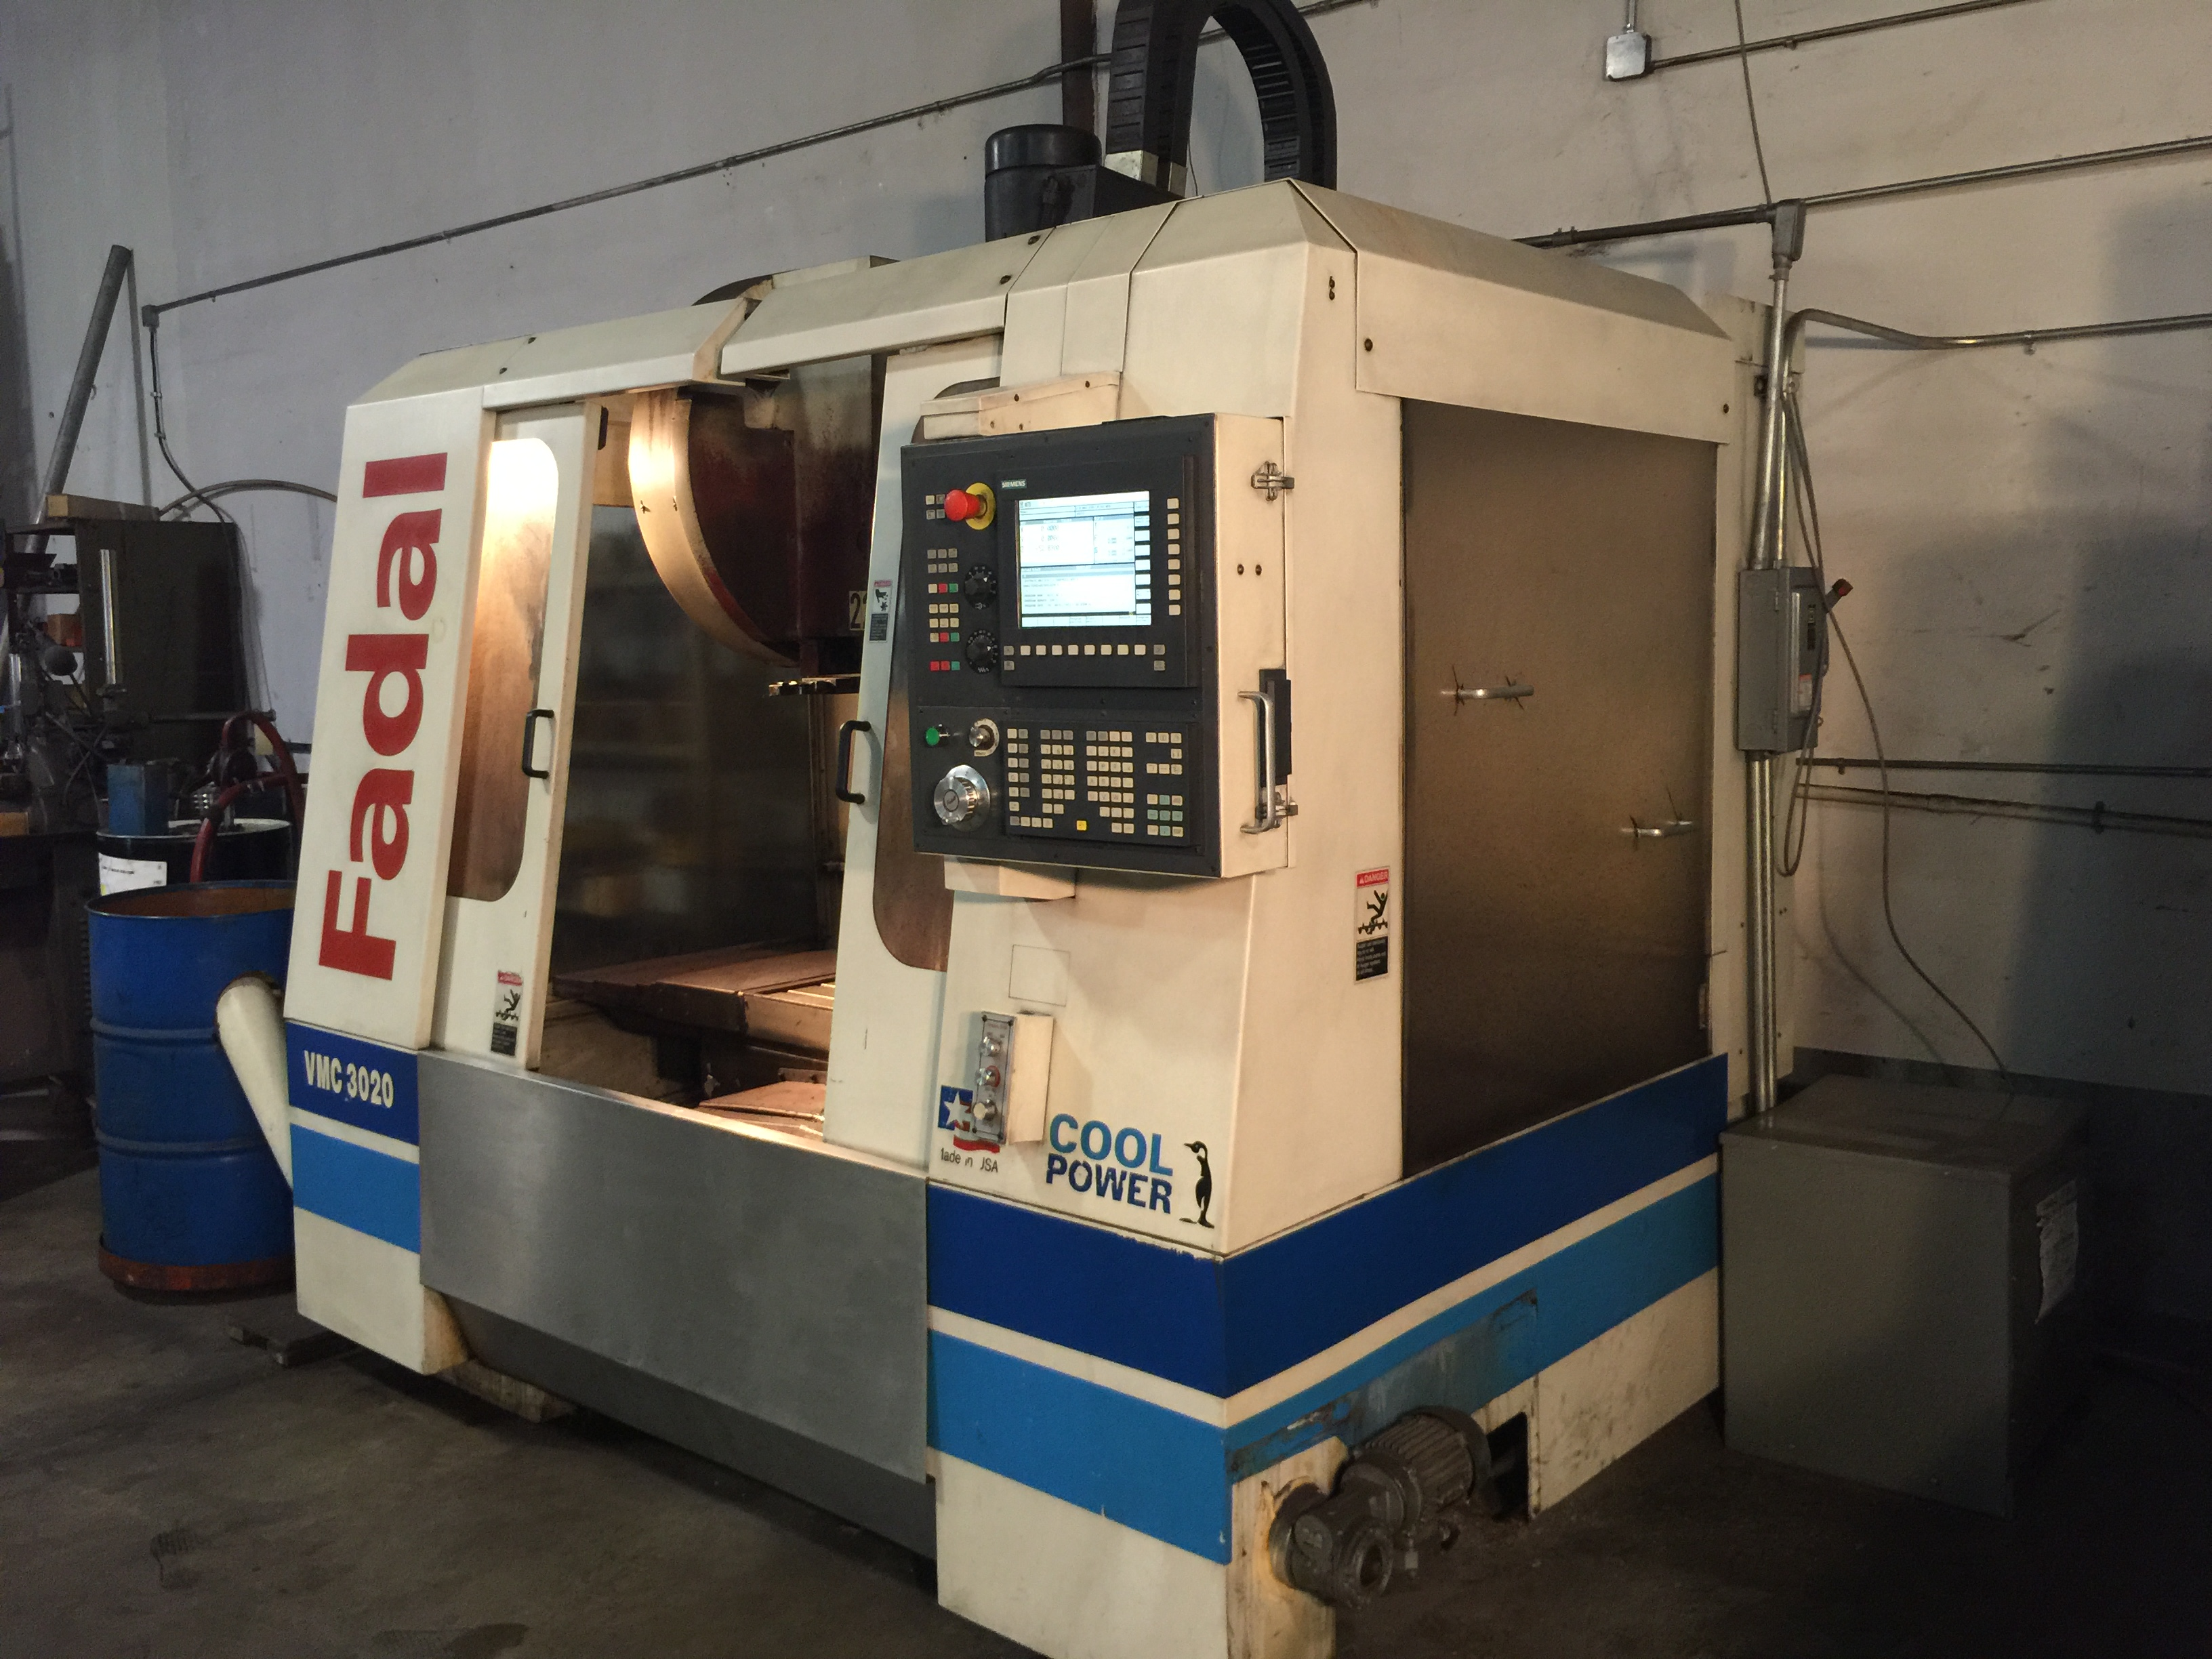 "Lot 6 - CNC VERTICAL MACHINING CENTER, FADAL MDL. 3020, new 2000, 3 axis, Siemens CNC control, 20"" x 40"" T-"